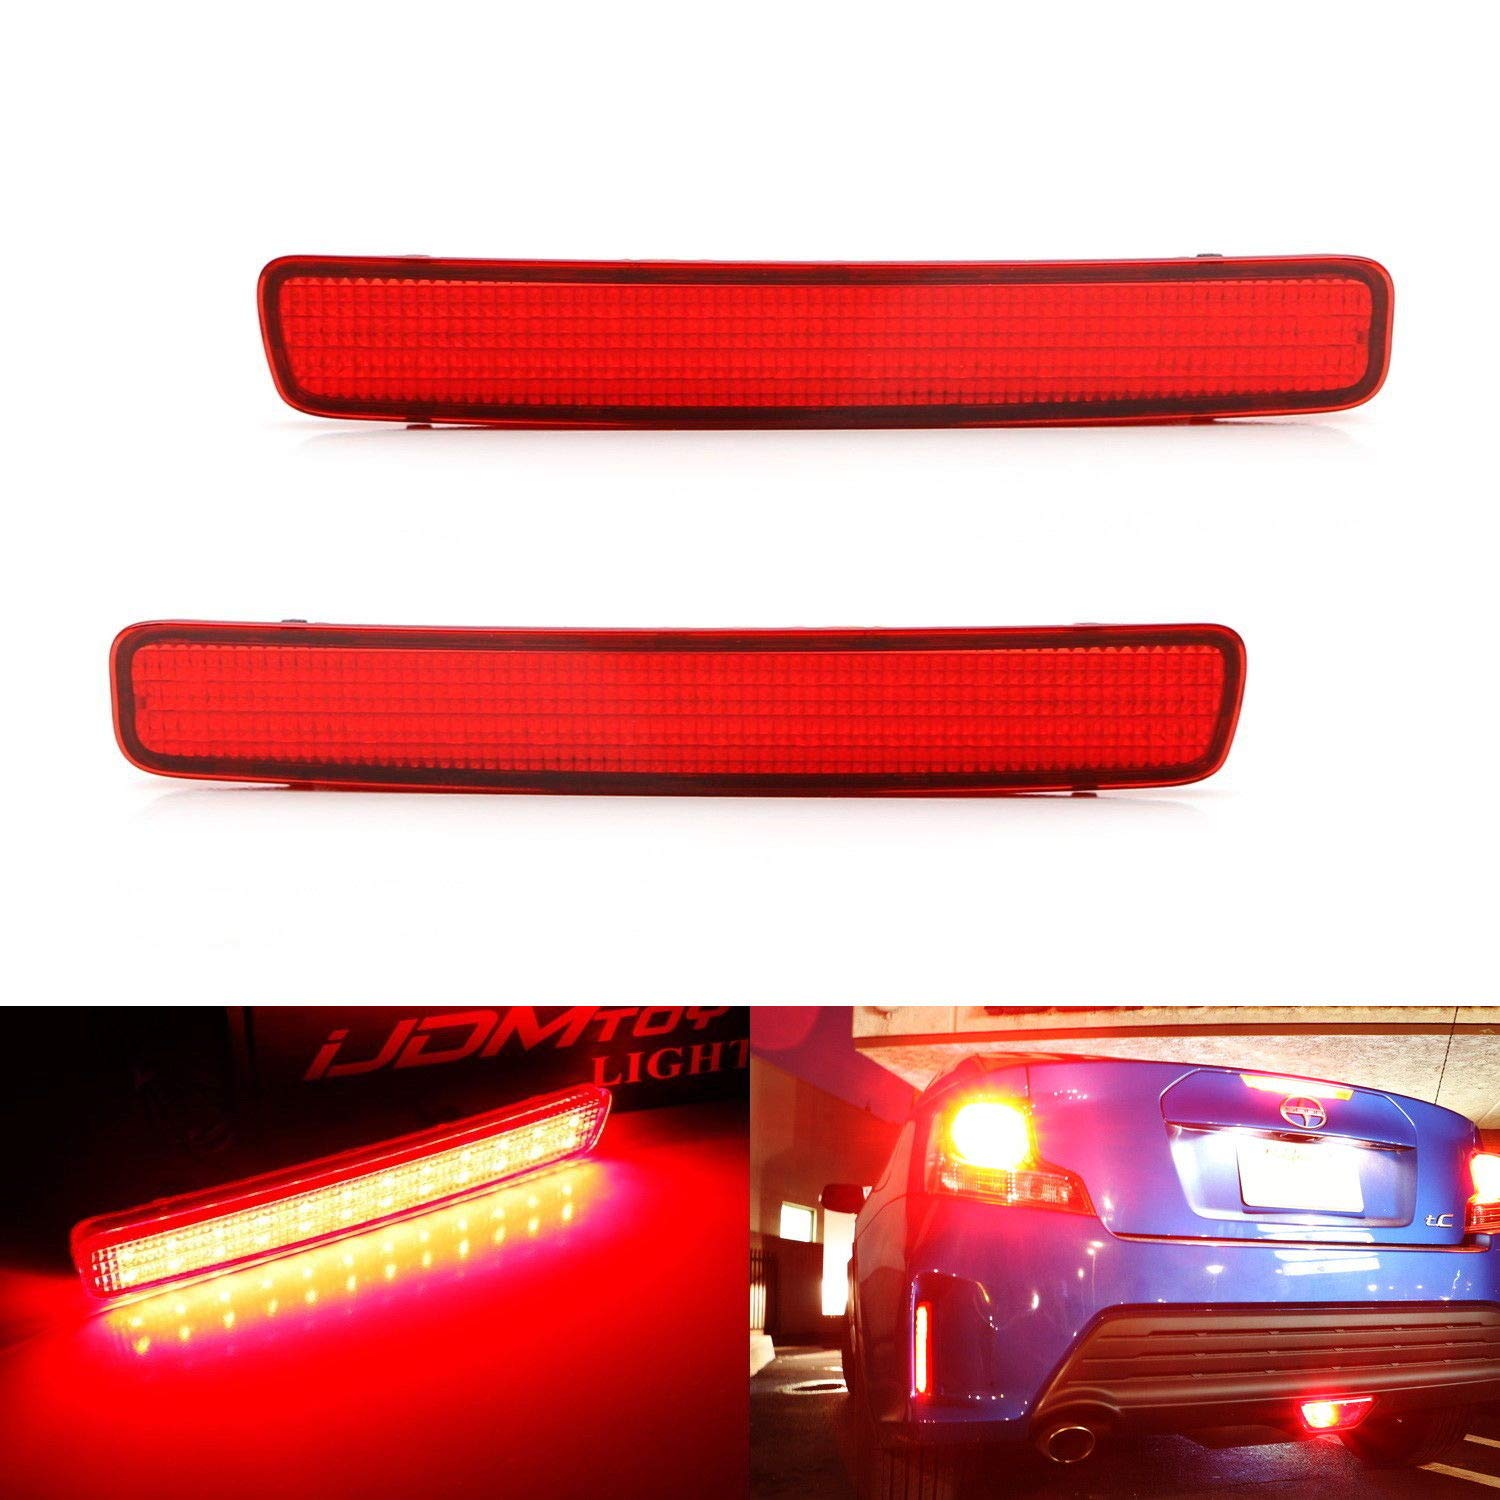 iJDMTOY Red Lens 48-SMD LED Bumper Reflector Lights For 14-16 Scion tC & 12-17 Toyota Prius V, Function as Tail, Brake & Rear Fog Lamps